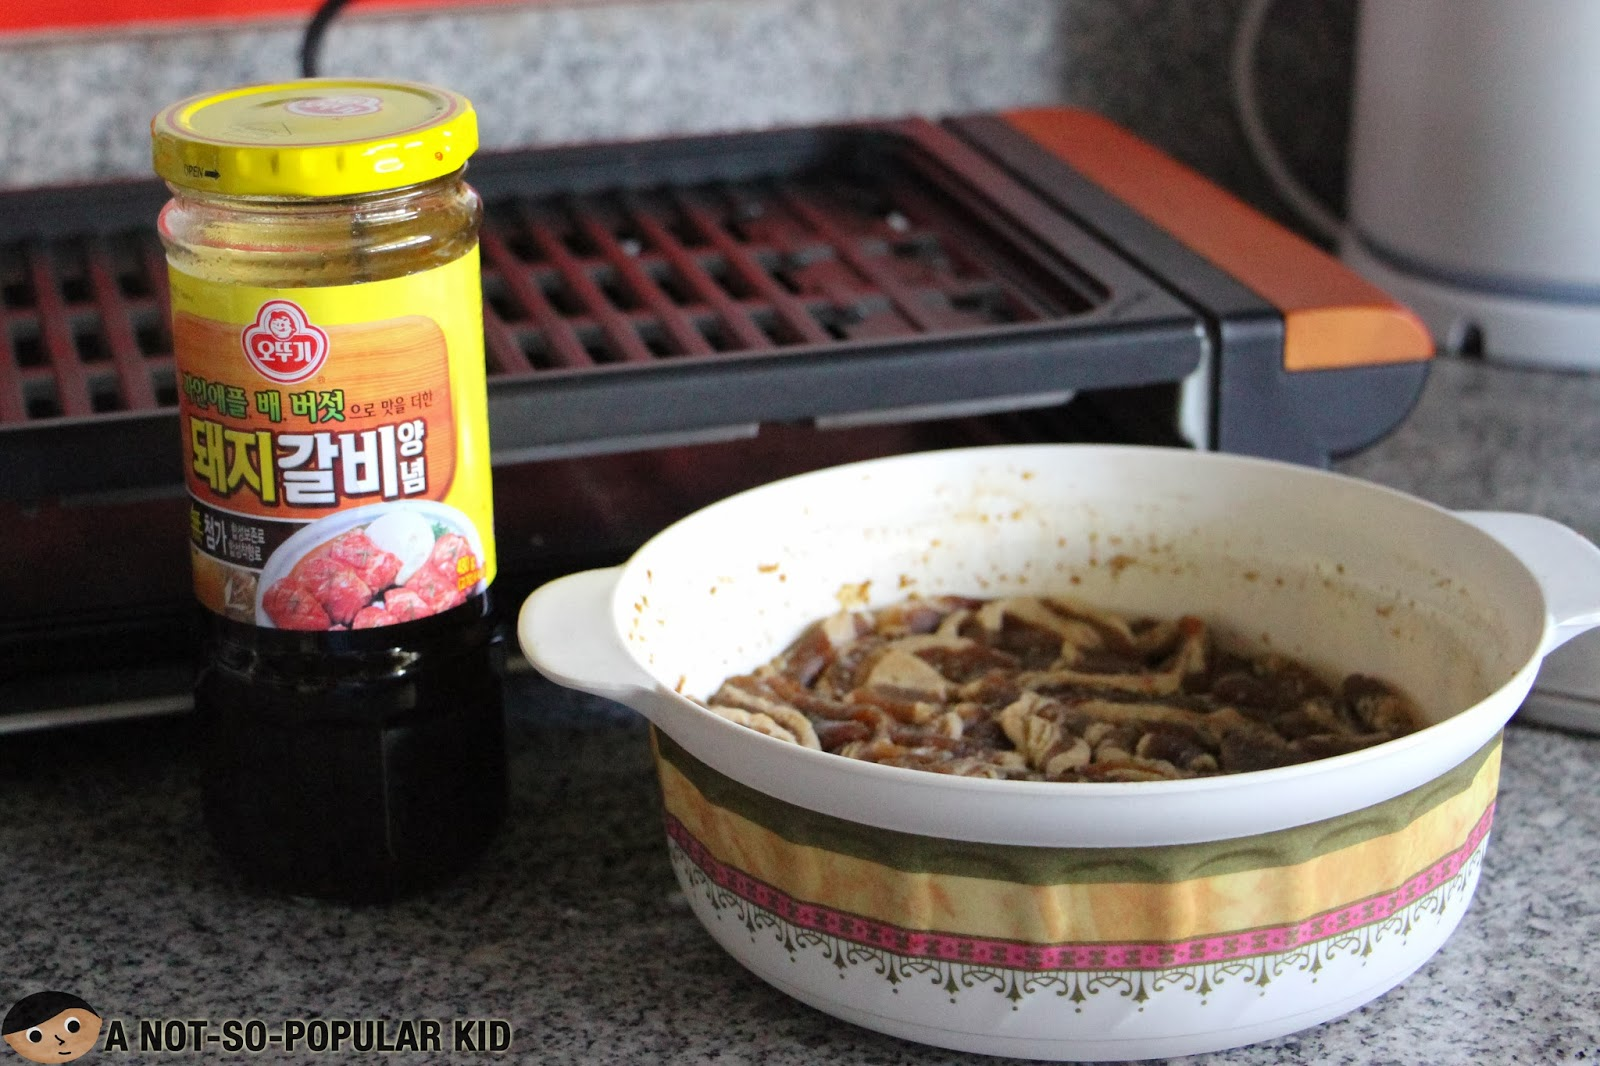 Marinated pork belly for the Home-Cooked Samgyeopsal